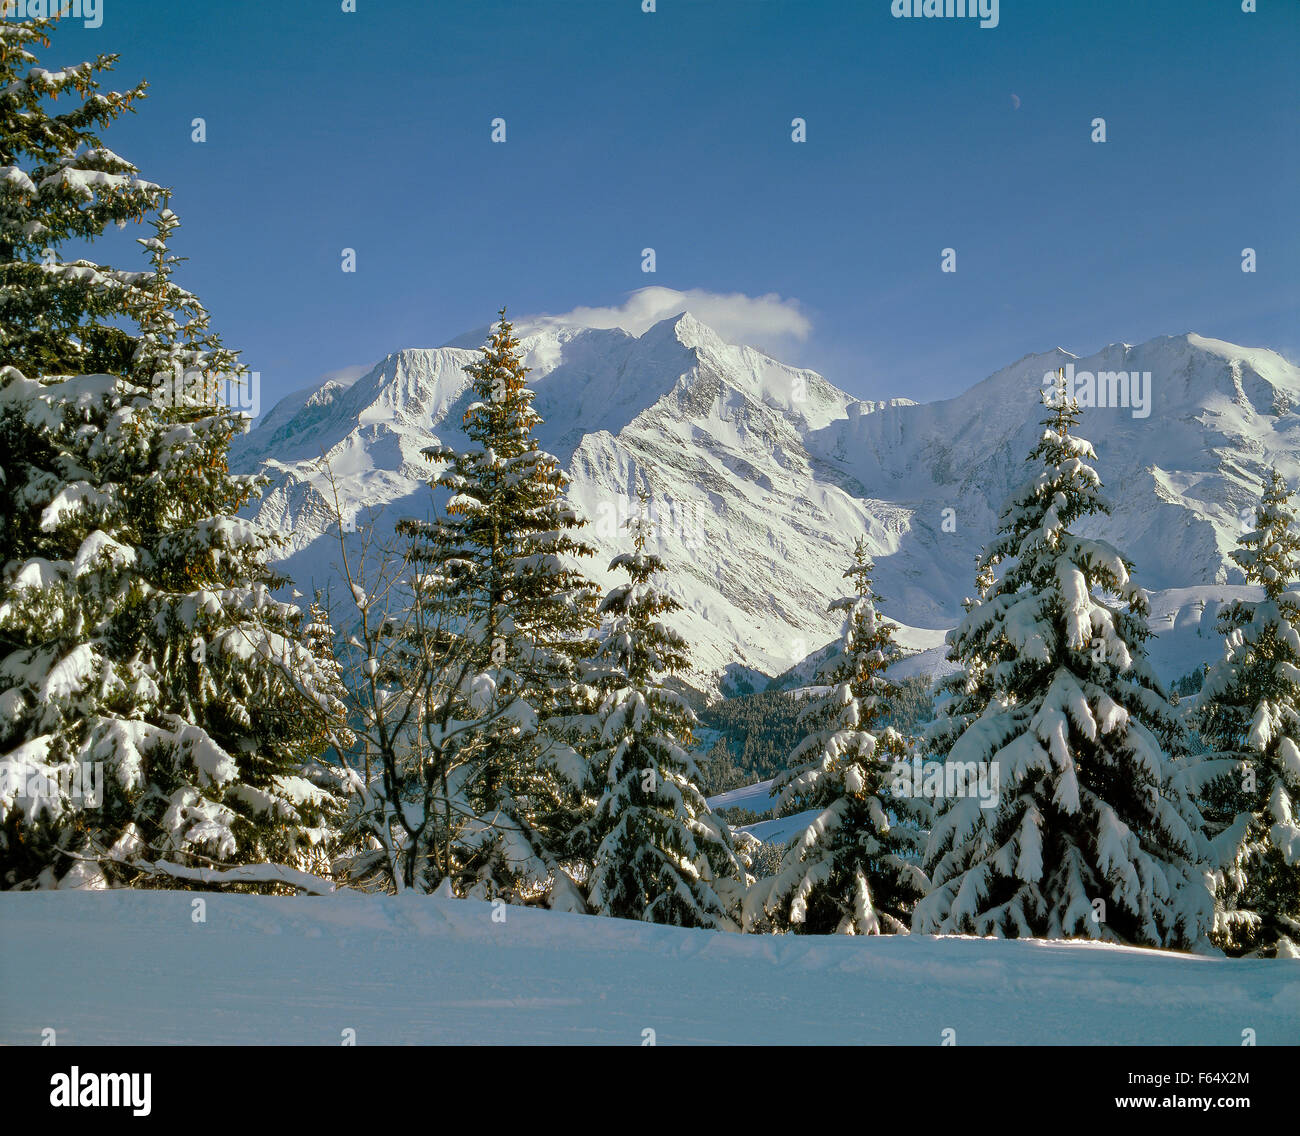 Mont Blanc massif during winter from Bettex, Saint Gervais, Haute Savoie, France. - Stock Image